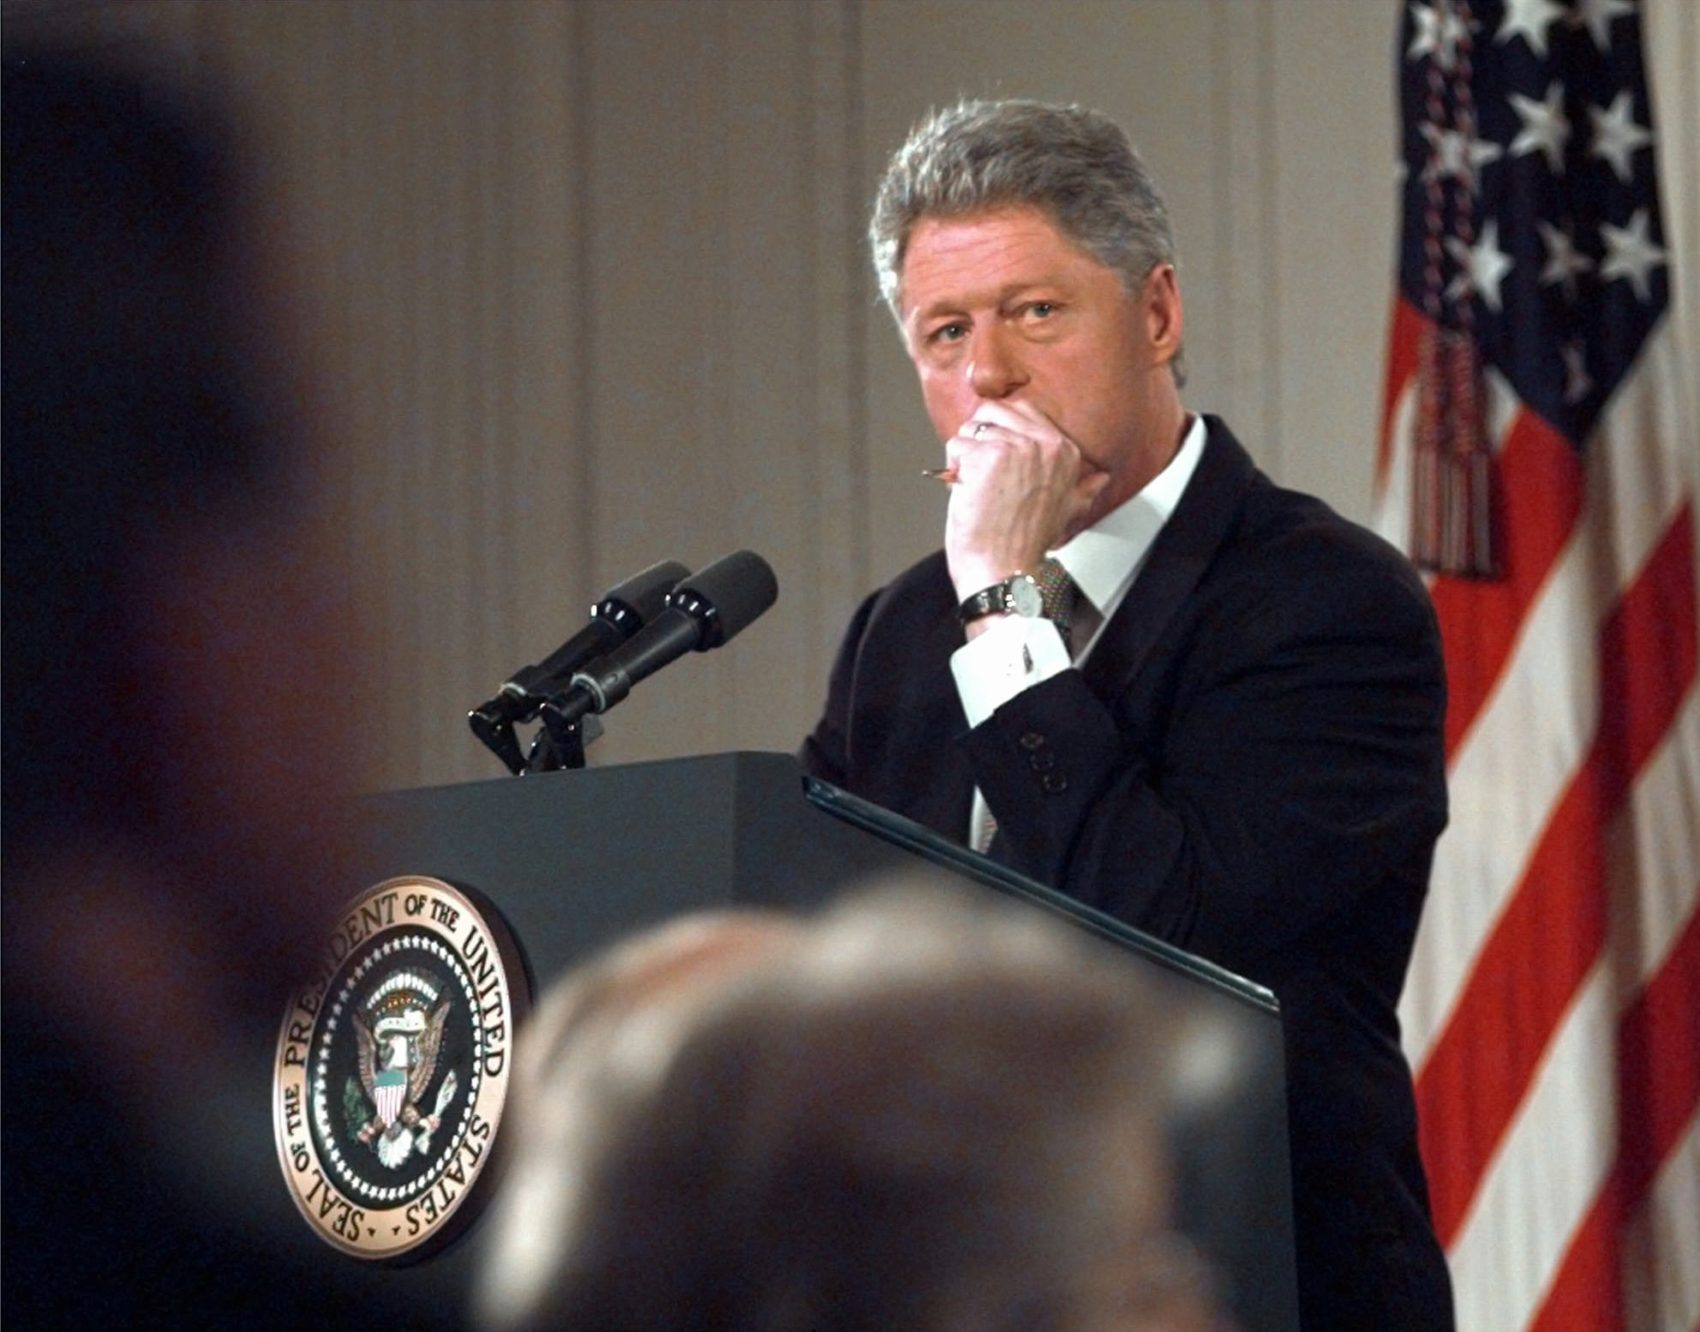 President Clinton ponders a question during his news conference in the East Room of the White House Thursday April 30, 1998. (Ron Edmonds/AP)